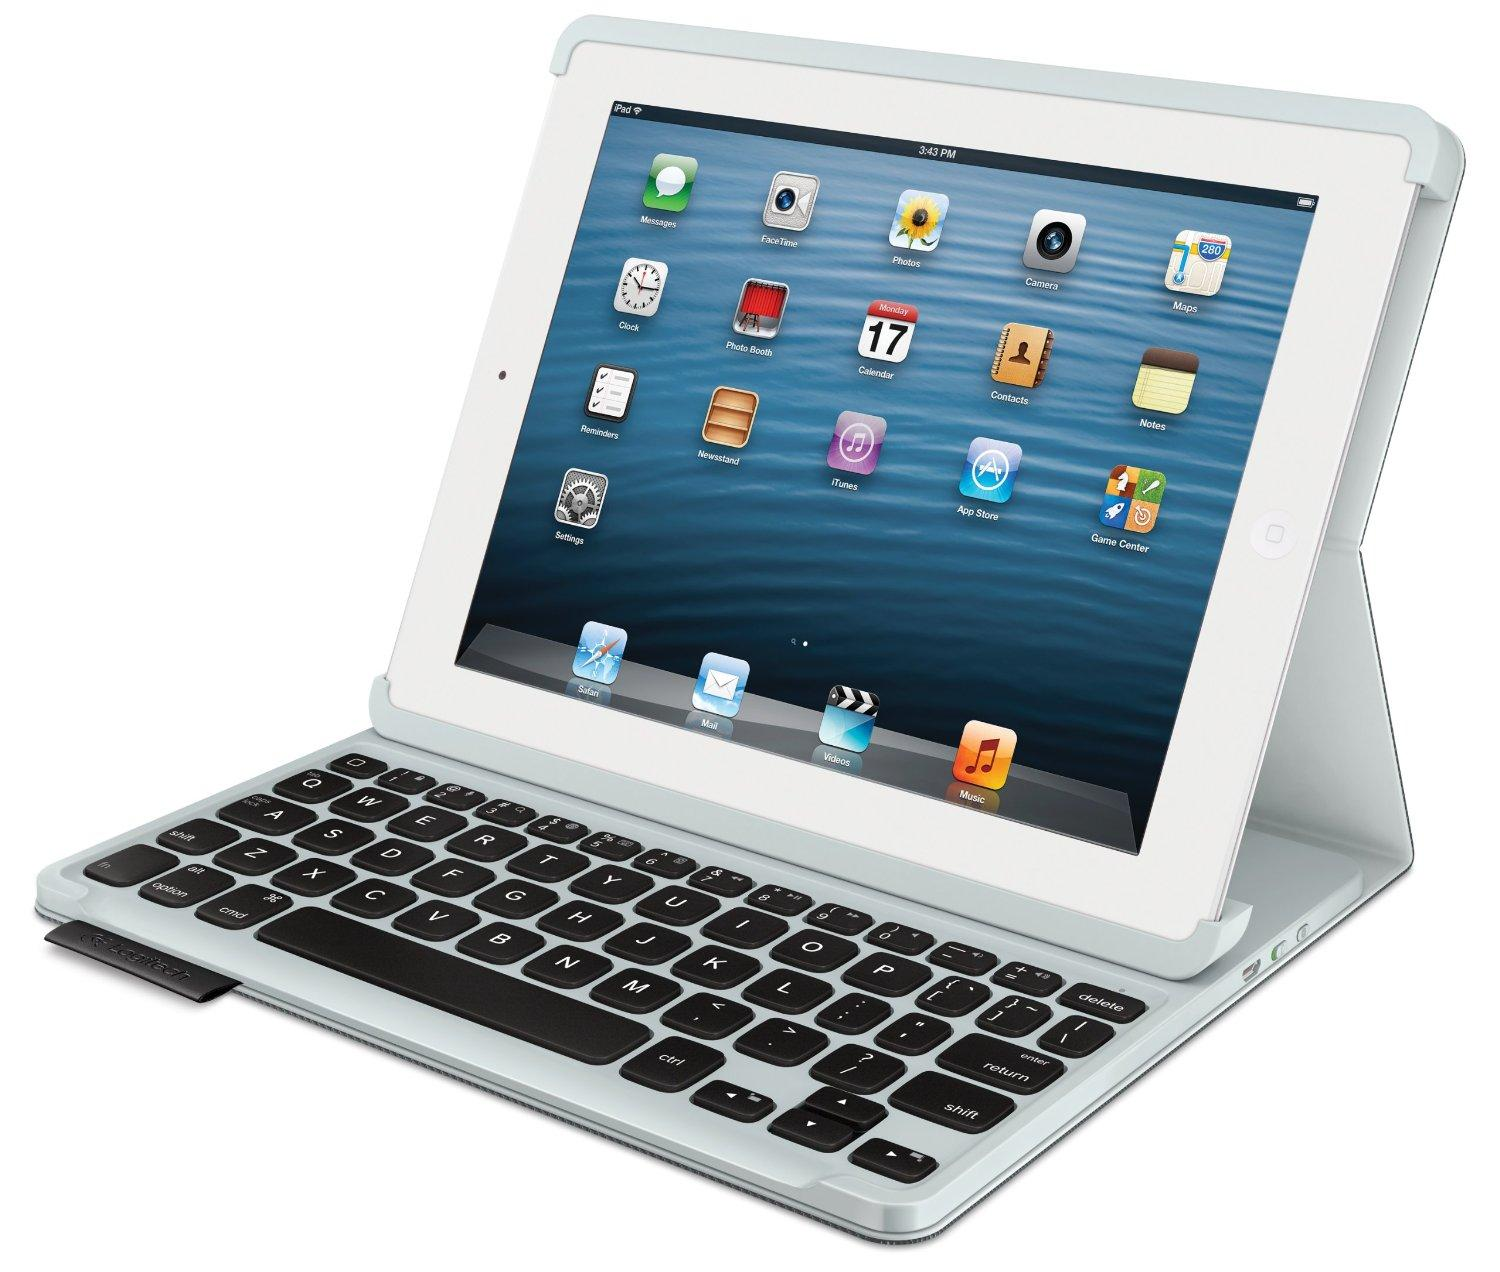 $51.99 Logitech Keyboard Folio for iPad 2G/3G/4G - Carbon Black